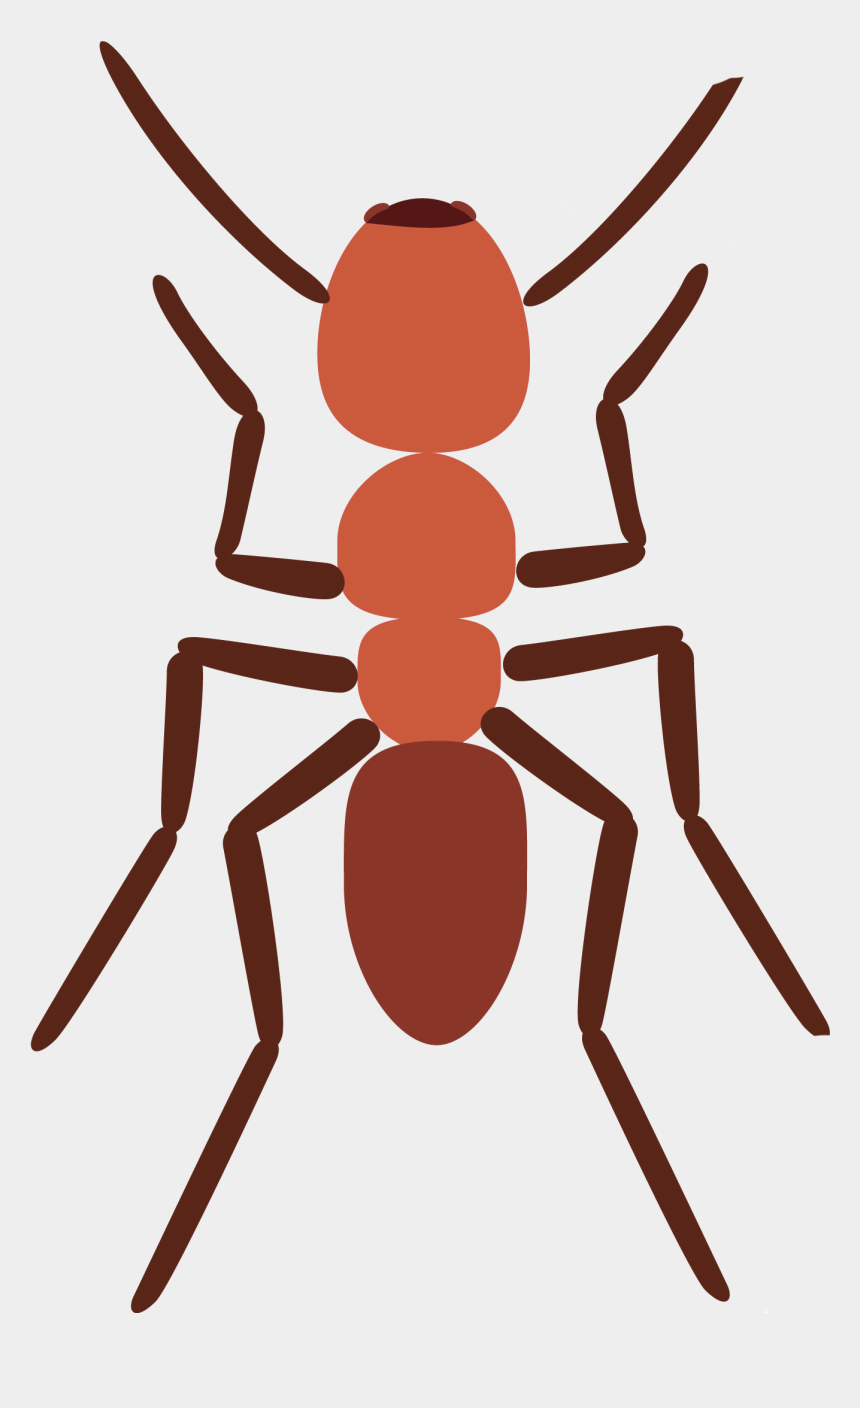 ants clip art, Cartoons - Image Stock Ants Spider Scout Ant Explore Pictures - Illustration